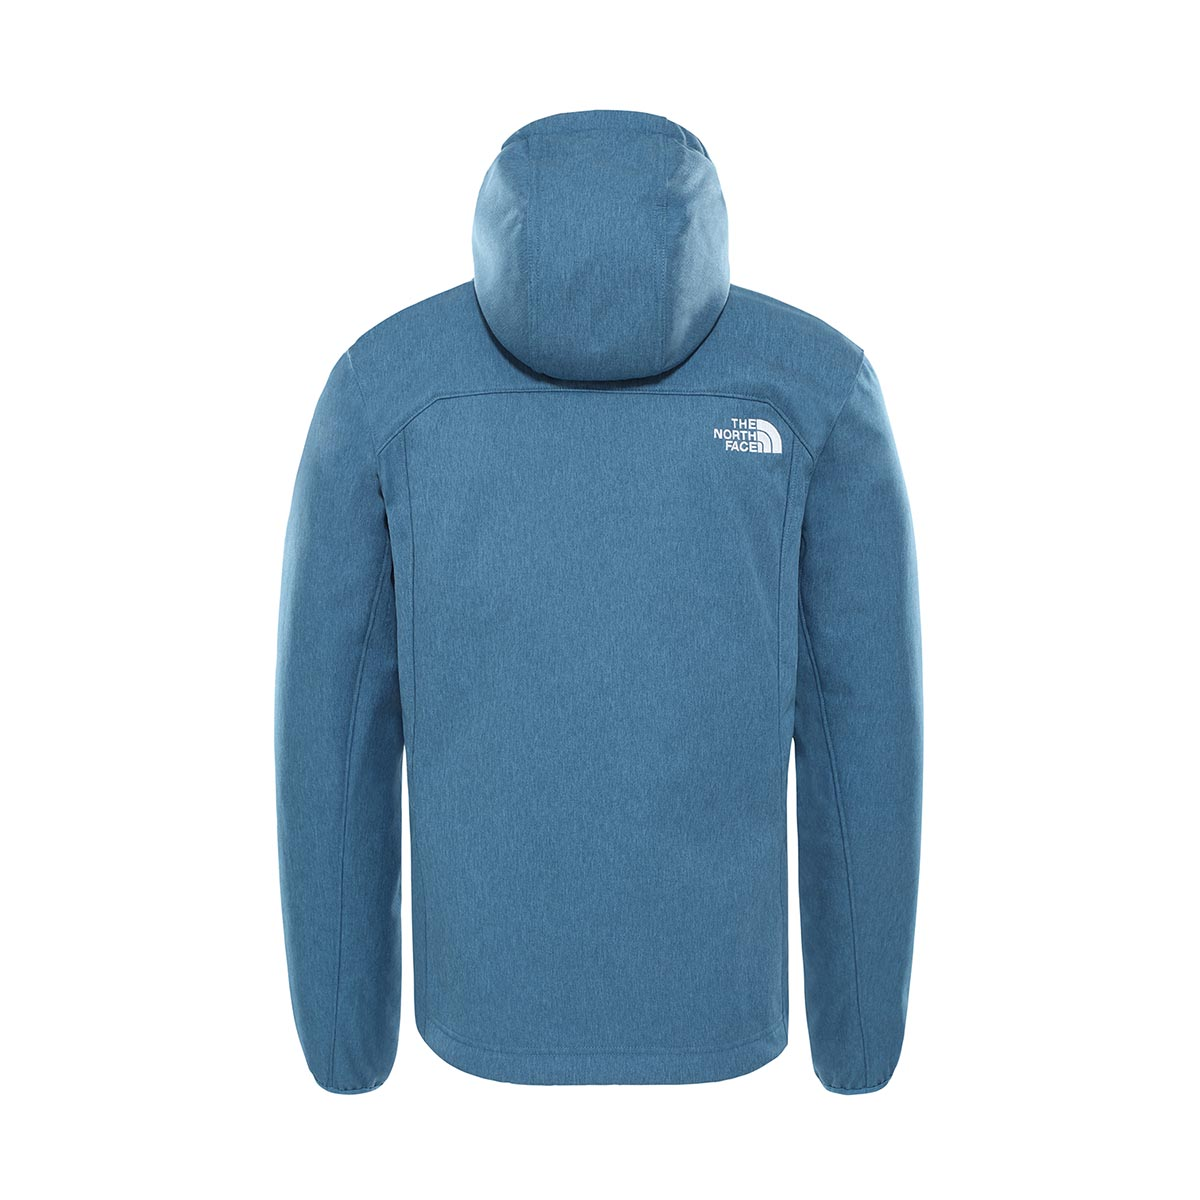 THE NORTH FACE - QUEST SOFTSHELL JACKET